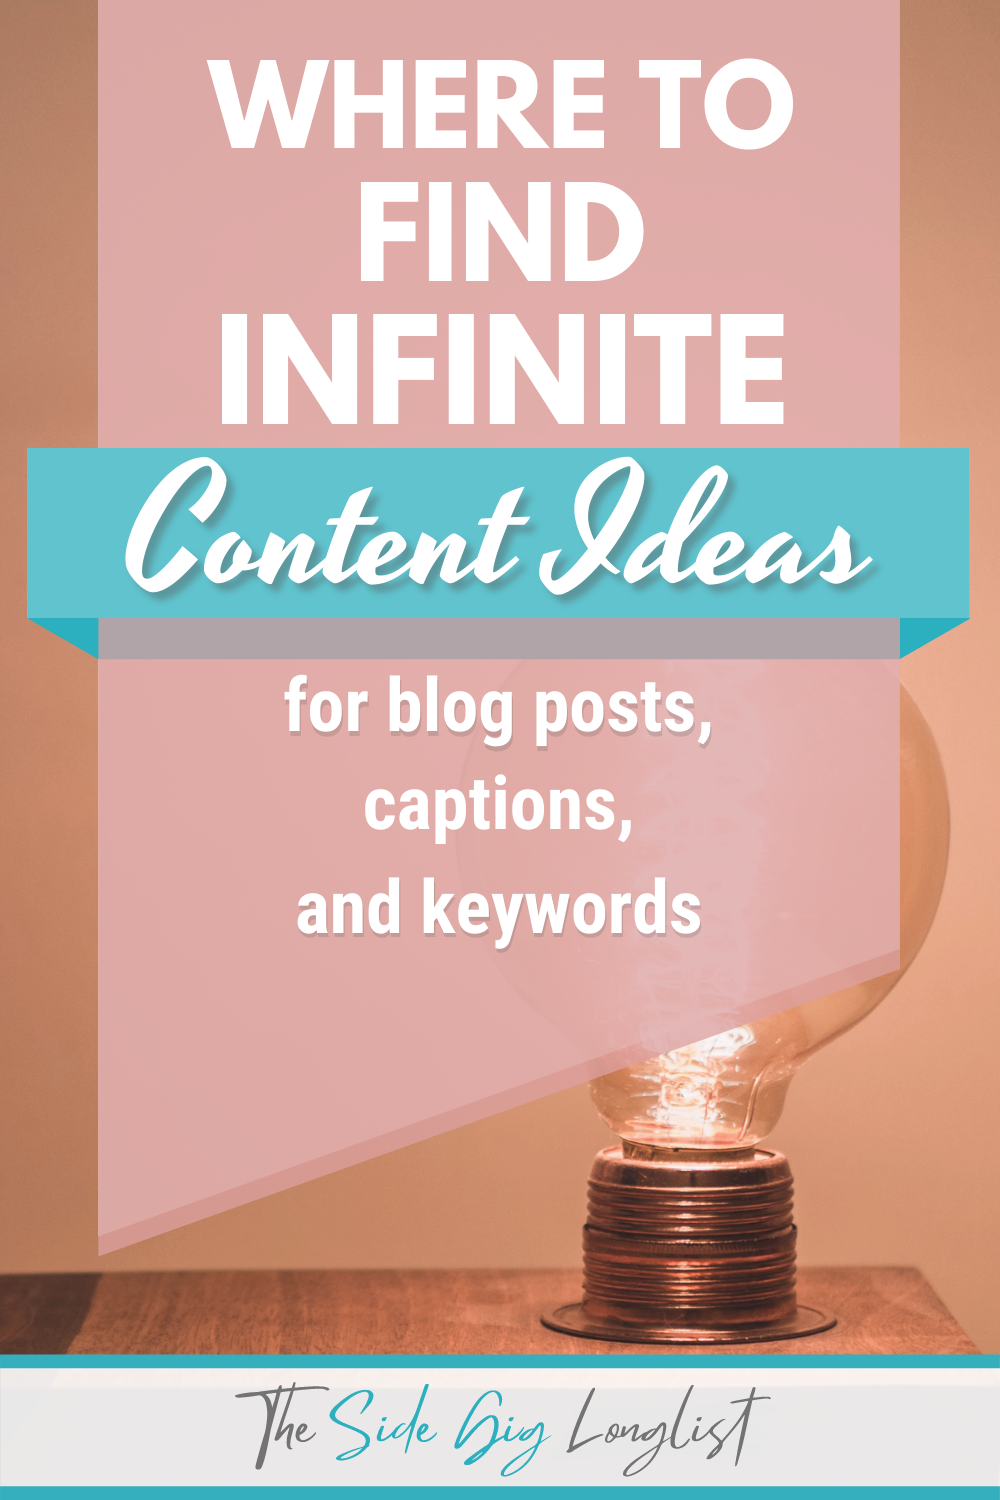 where to find infinite content ideas for blog posts